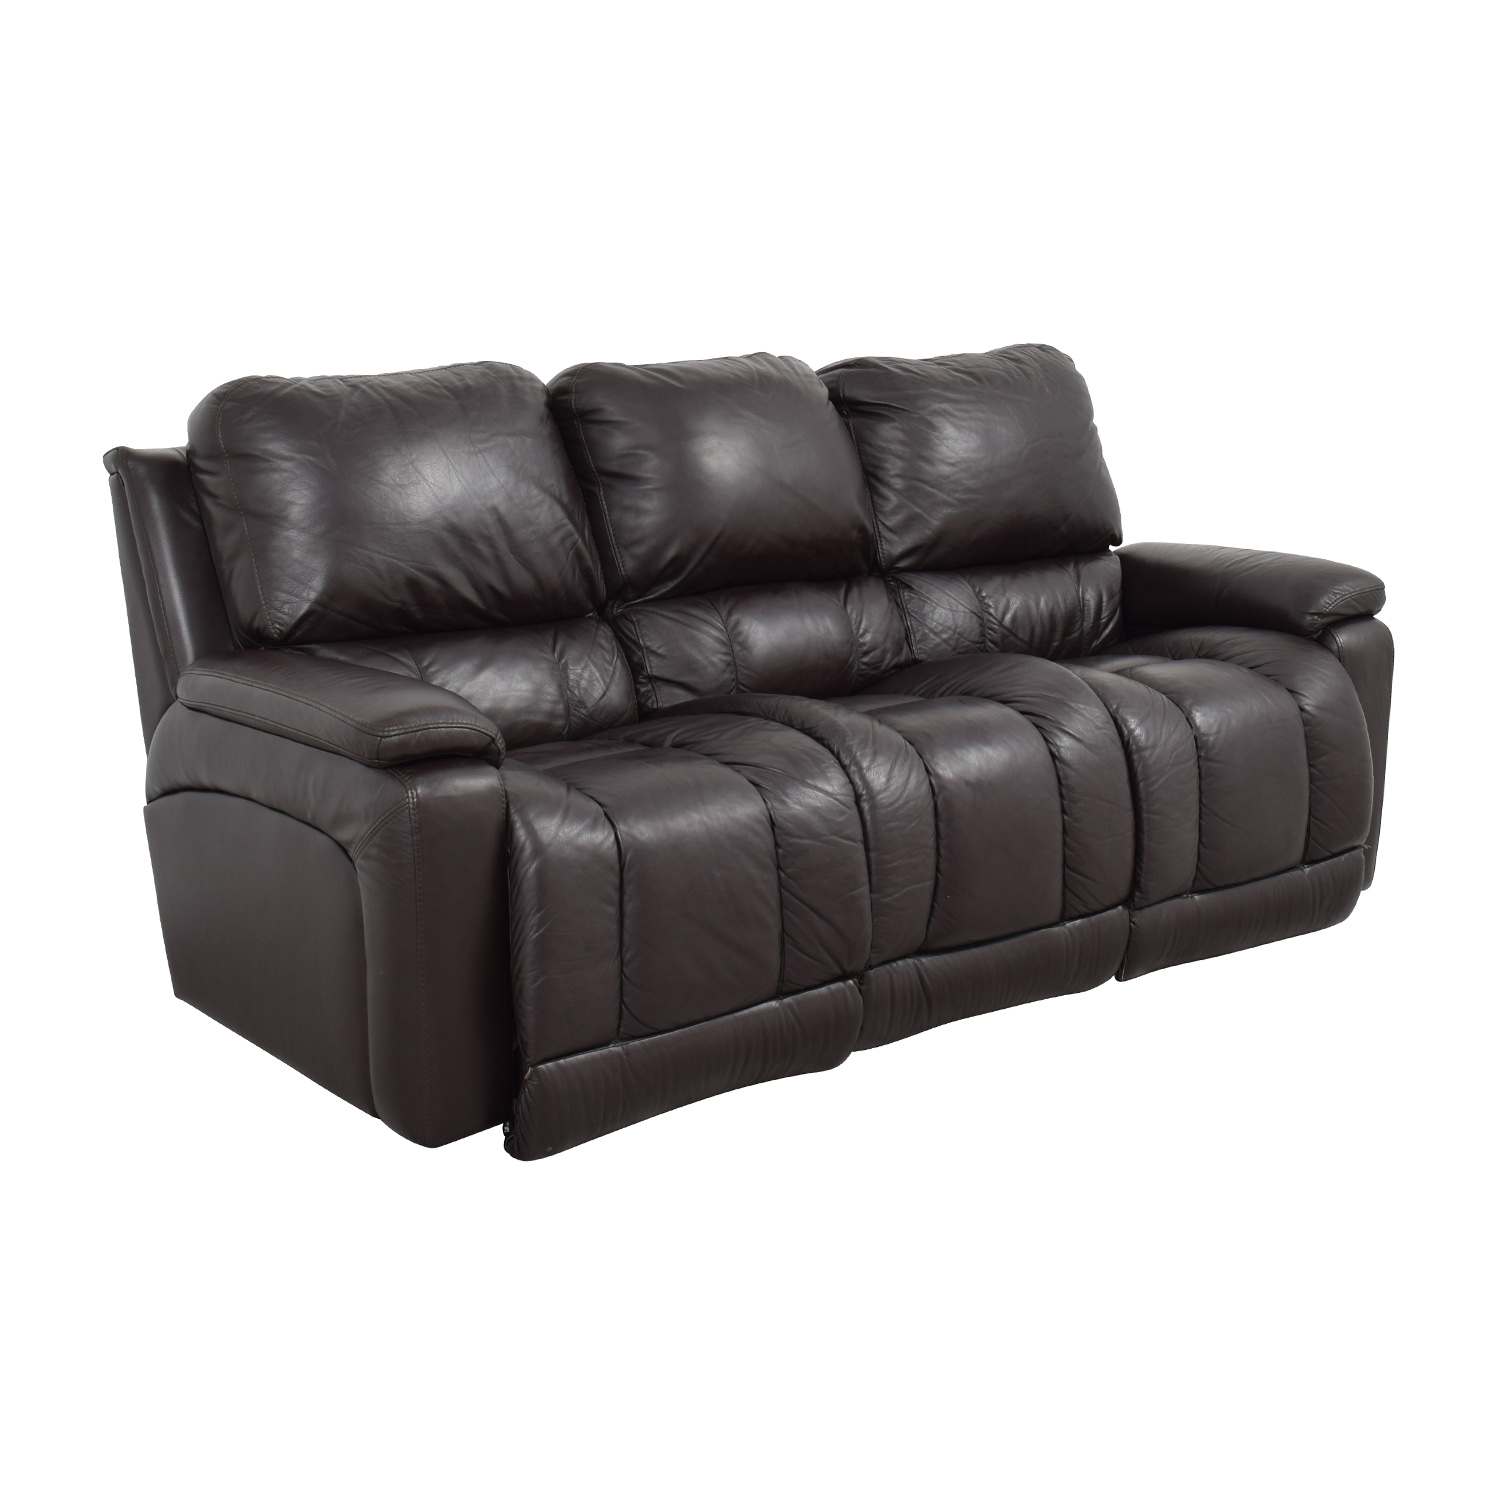 ... buy La-Z-Boy Brown Leather Reclining Sofa La-Z-Boy Classic ...  sc 1 st  Furnishare & 76% OFF - La-Z-Boy La-Z-Boy Brown Leather Reclining Sofa / Sofas islam-shia.org